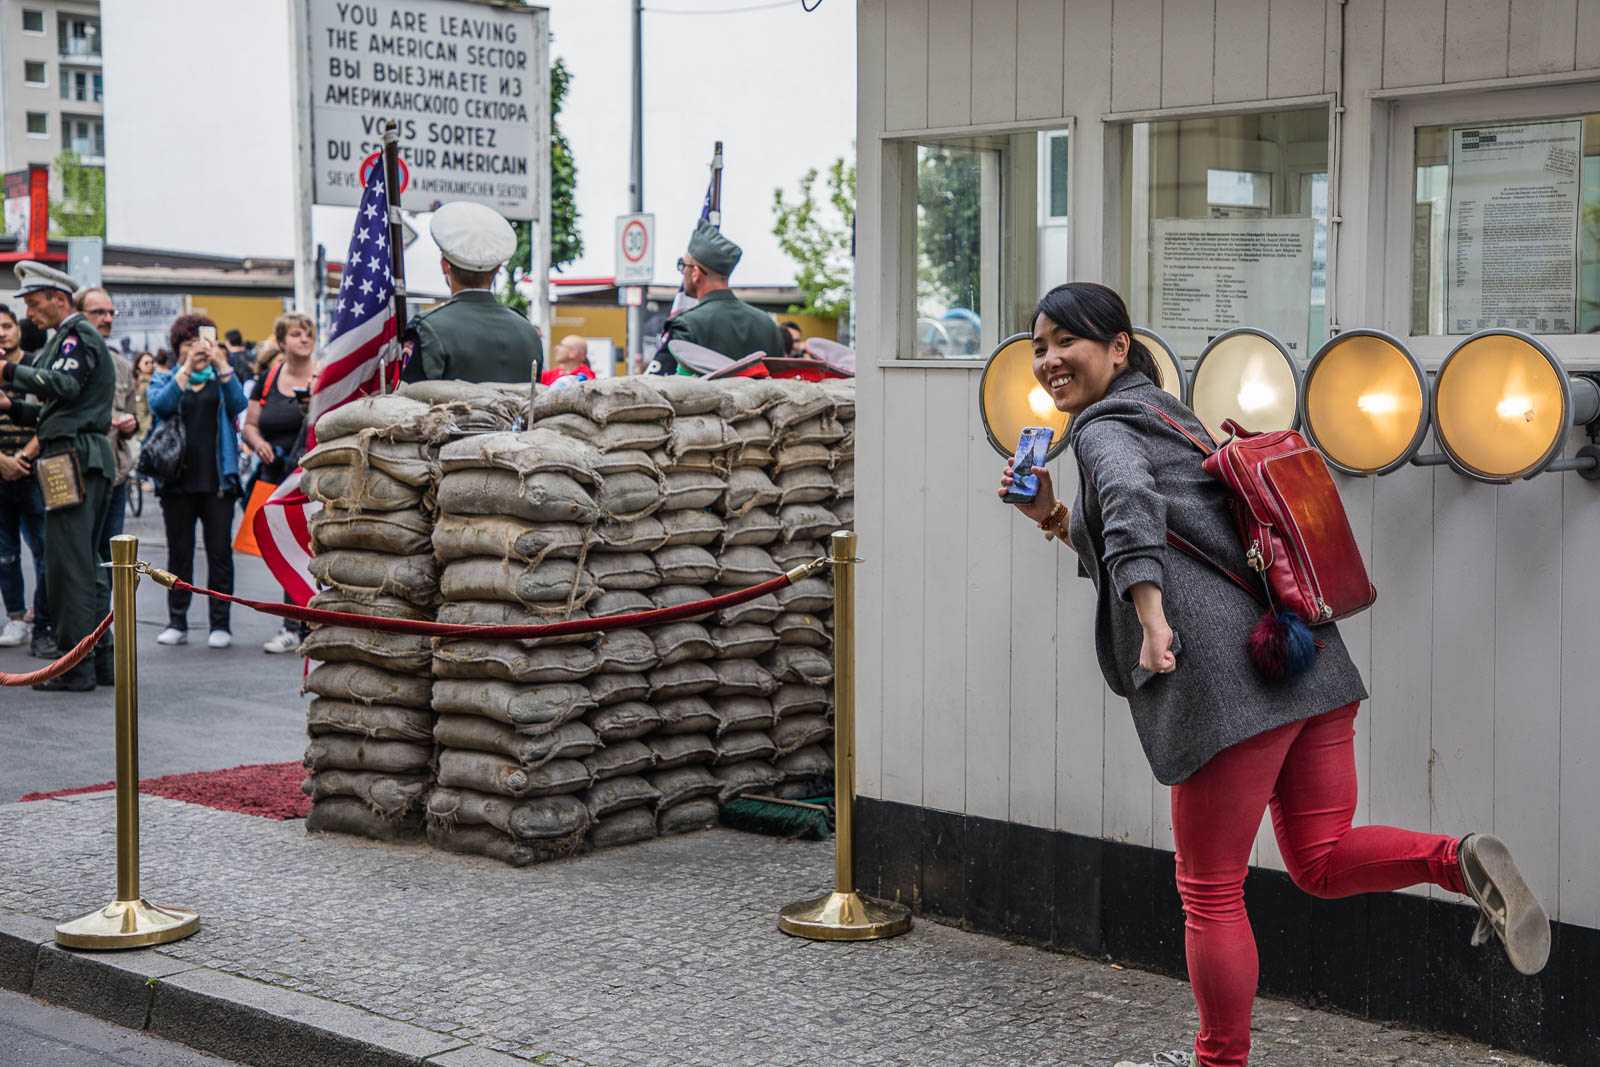 Run away from Checkpoint Charlie